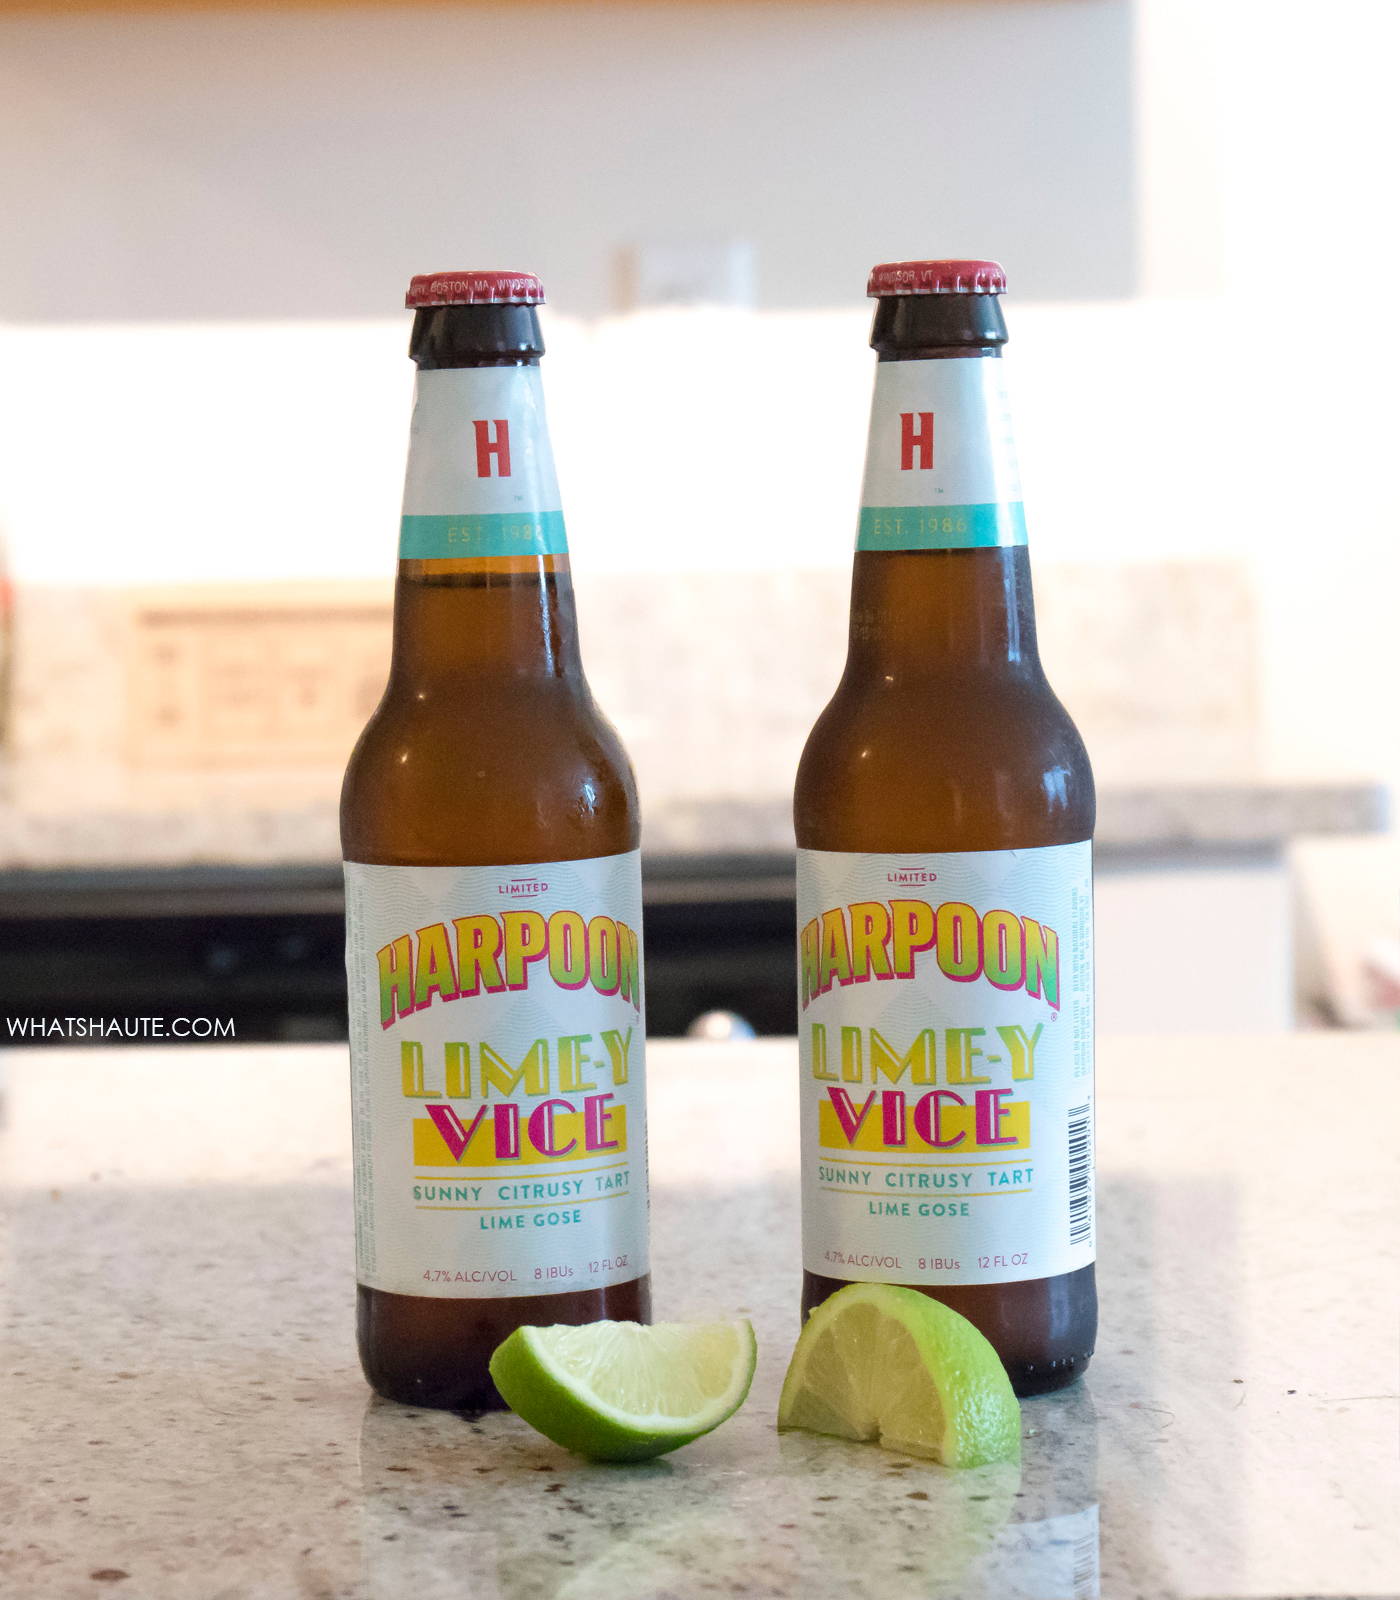 Harpoon Brewery Lime-y Vice Lime Gose style beer